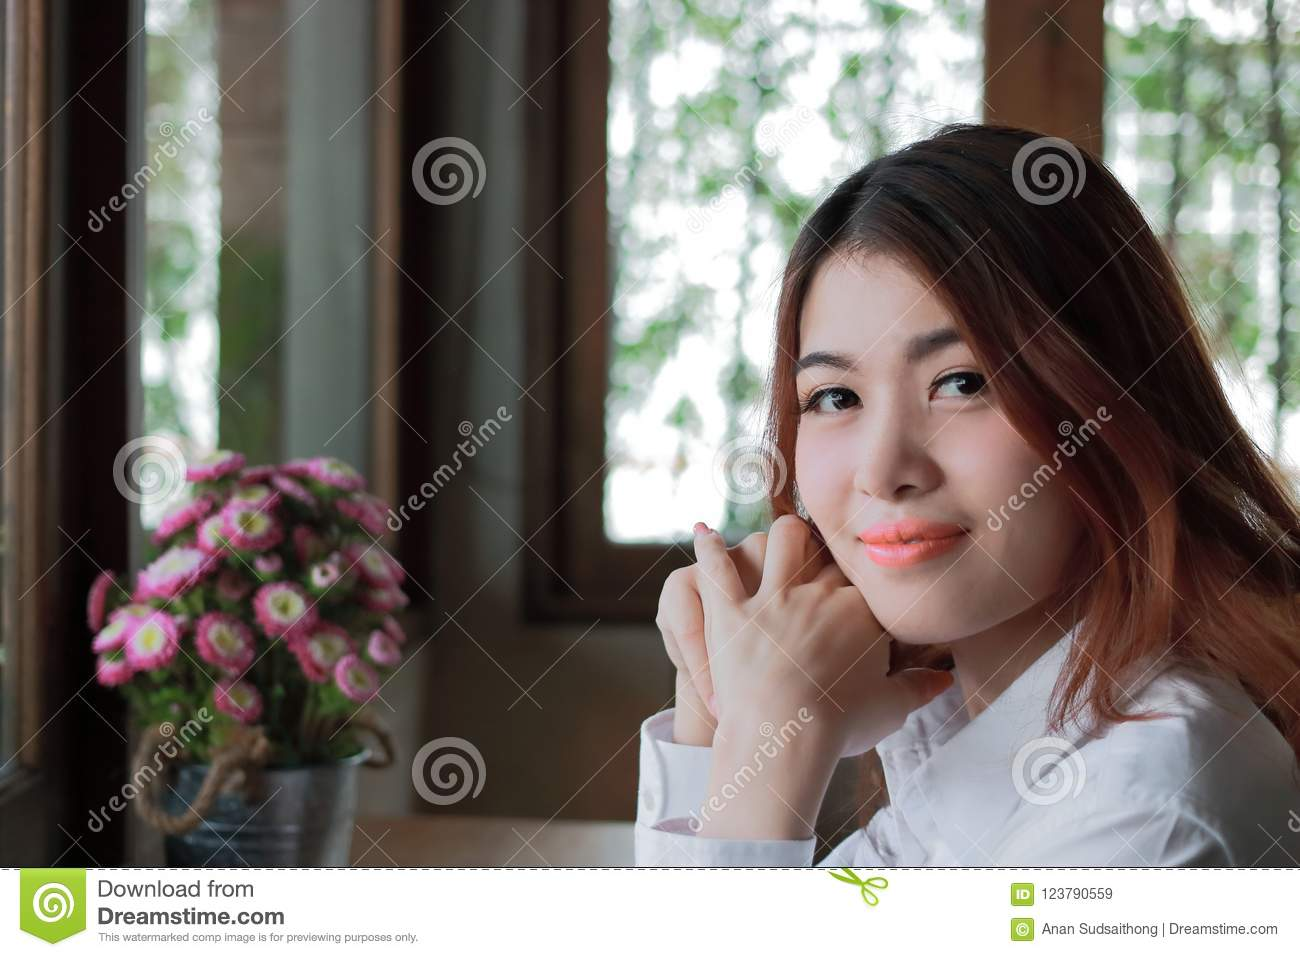 Close up on face of beautiful young Asian woman looking at camera with copy space.